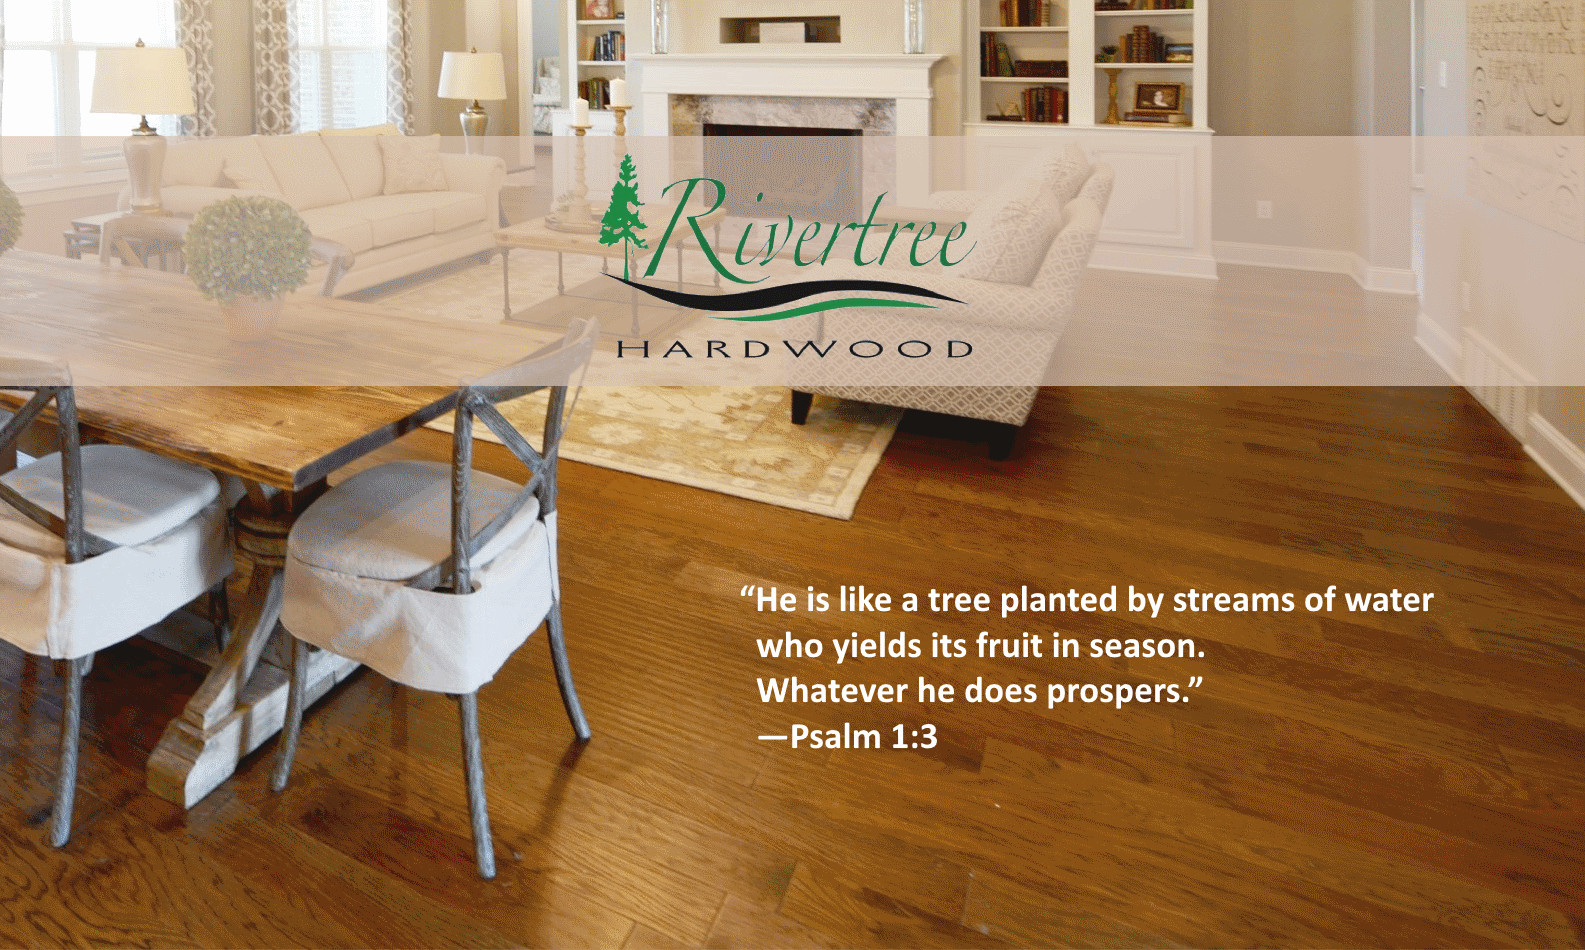 hardwood floor cleaning memphis of rivertree hardwood inc intended for sliderpix1